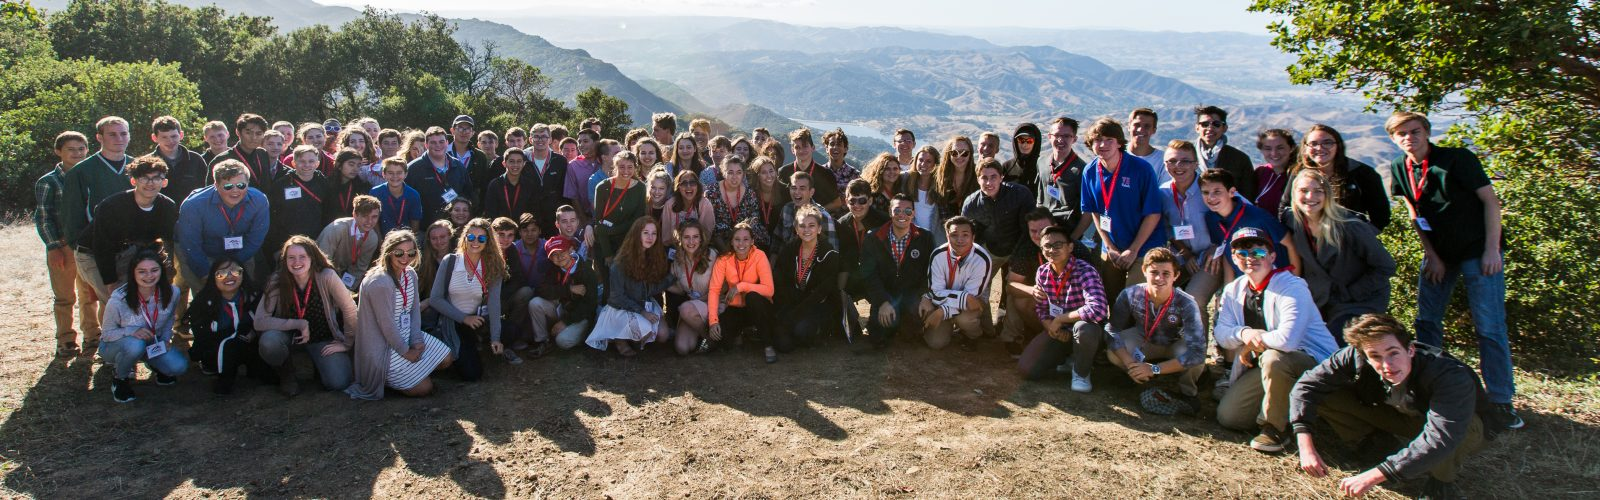 <b>The High School Conferences at the Reagan Ranch</b>